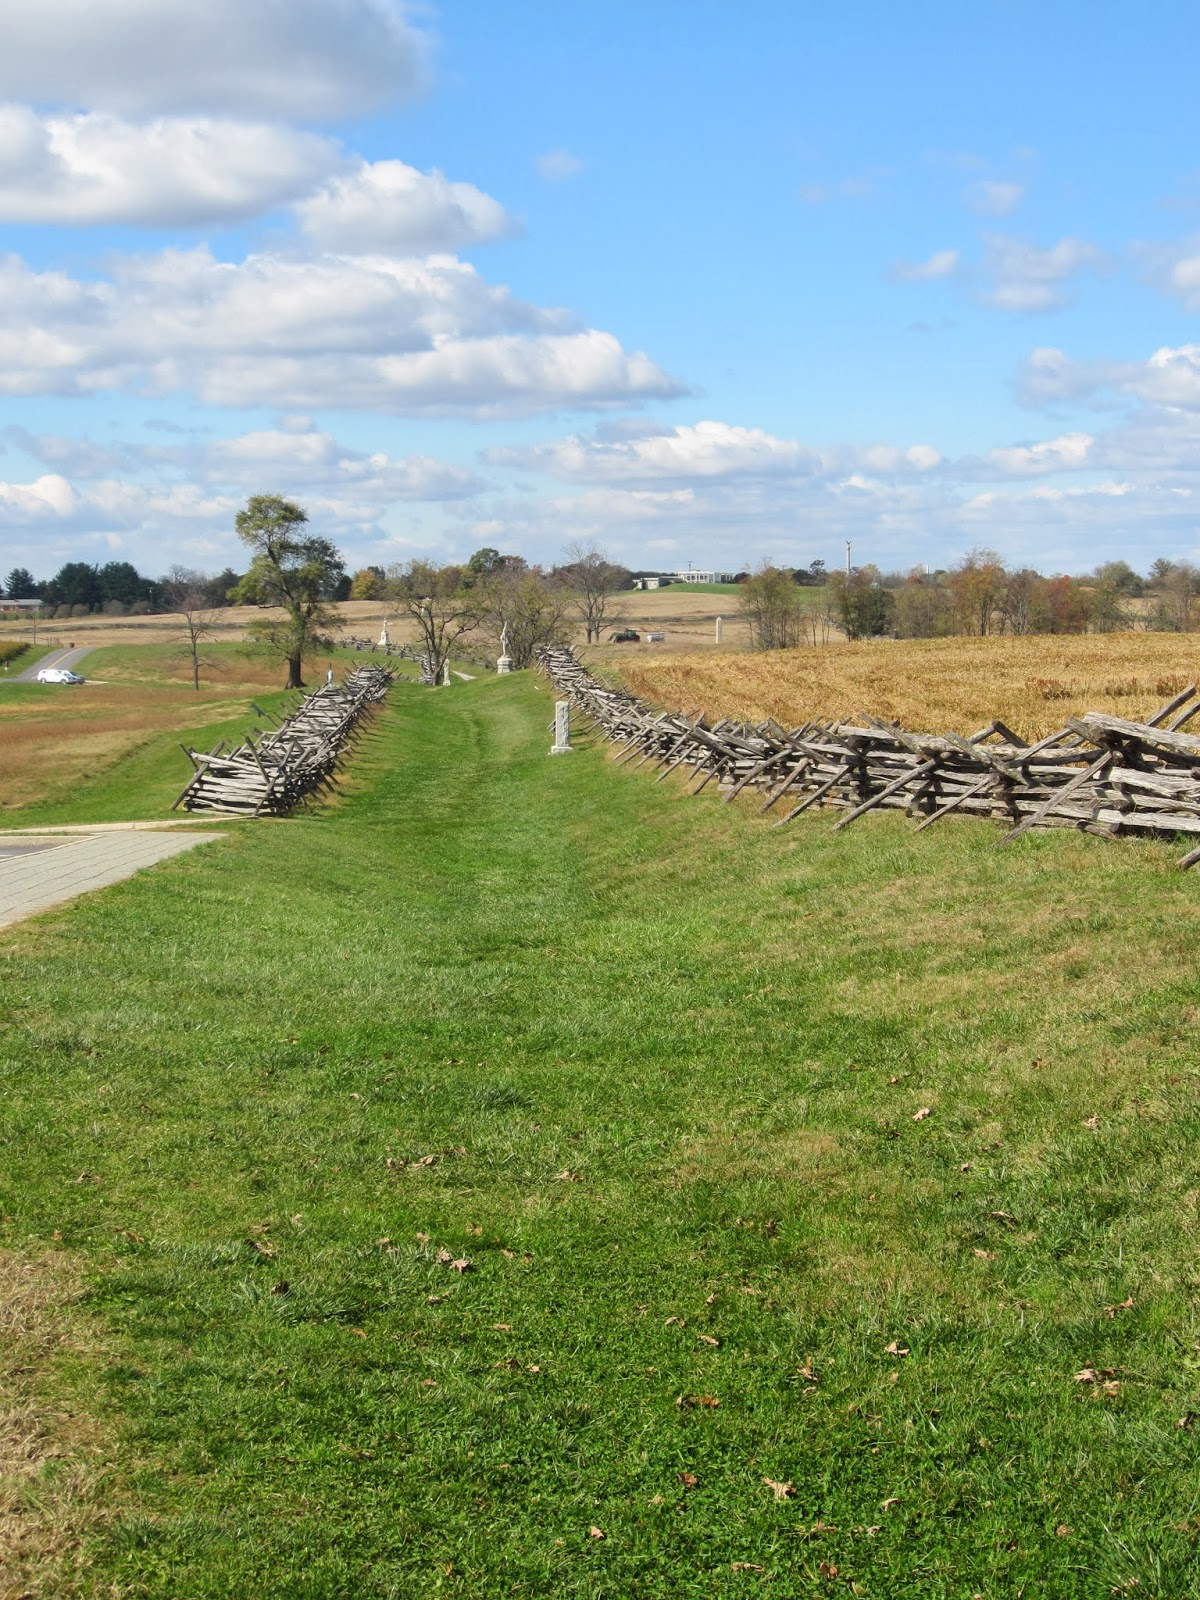 The Bloody Lane, Antietam / Souvenir Chronicles